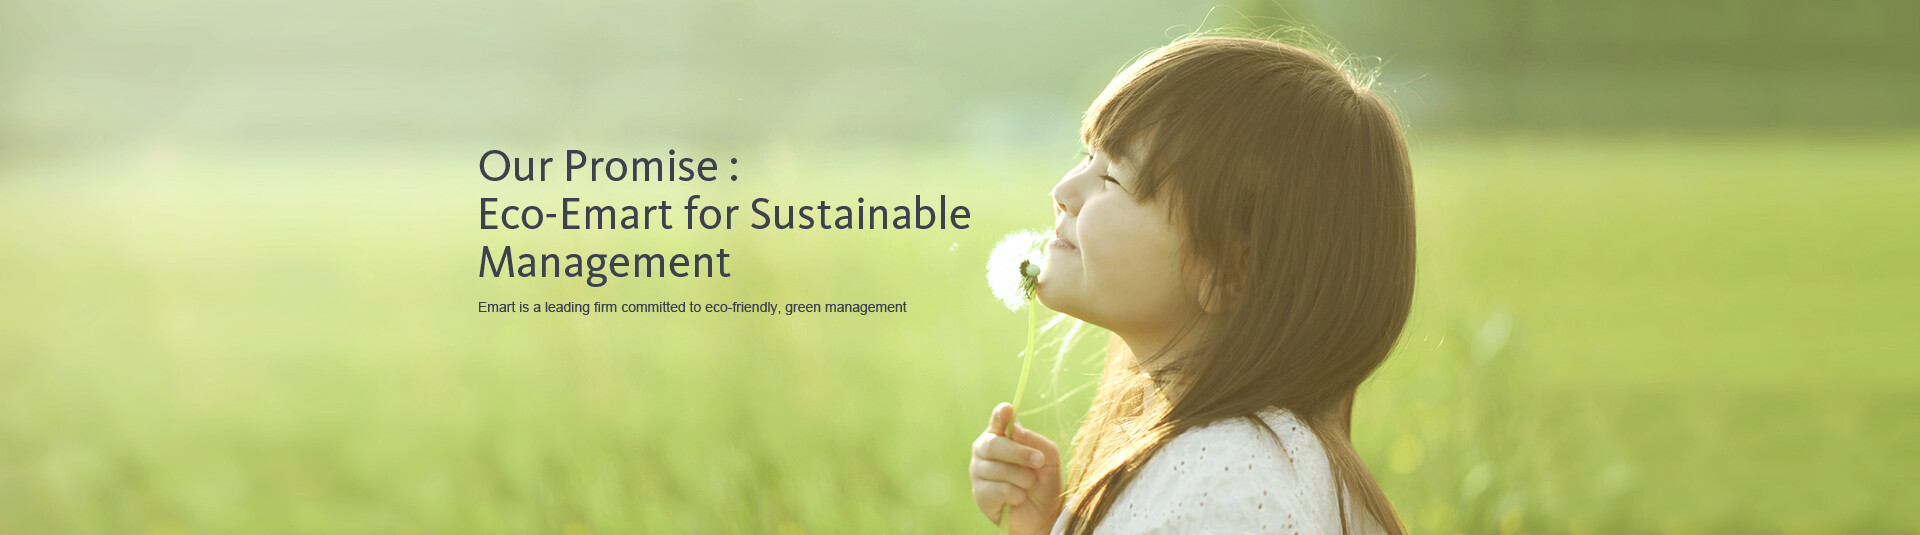 Our Promise : Eco-Emart for Sustainable Management Emart is a leading firm committed to eco-friendly, green management